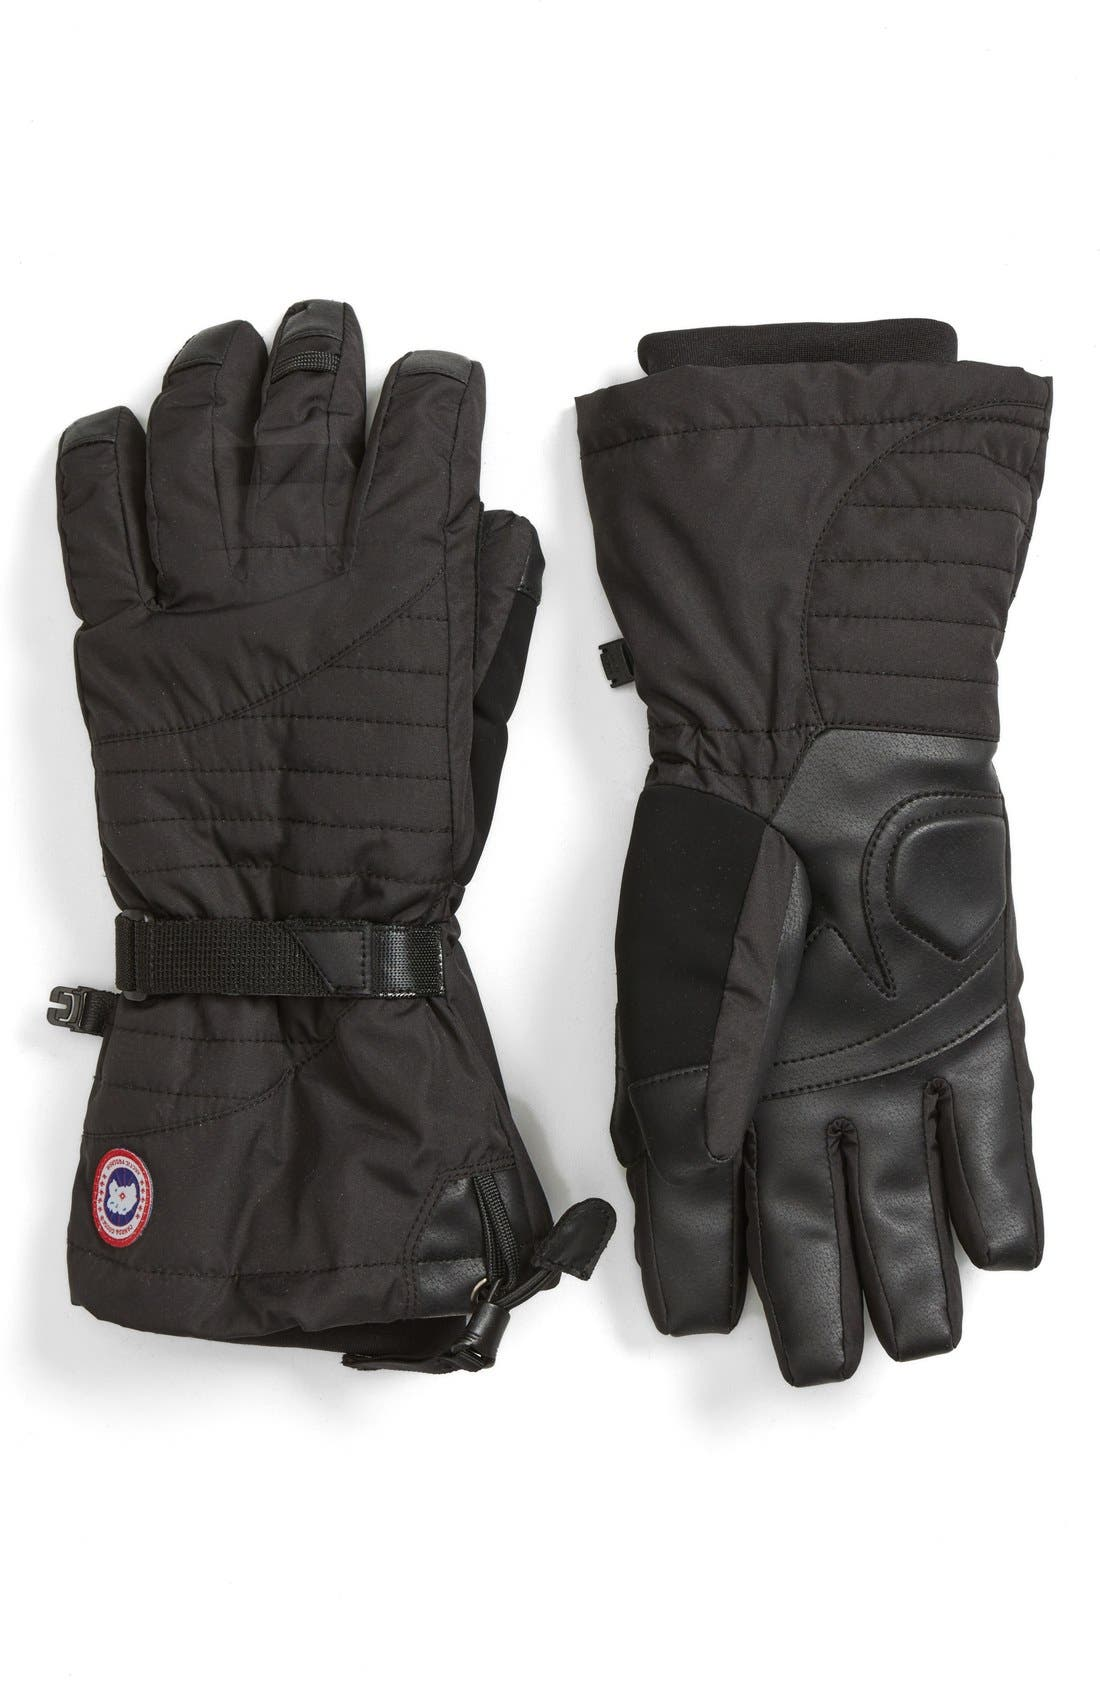 Alternate Image 1 Selected - Canada Goose 'Arctic' Waterproof Down Gloves (Women)